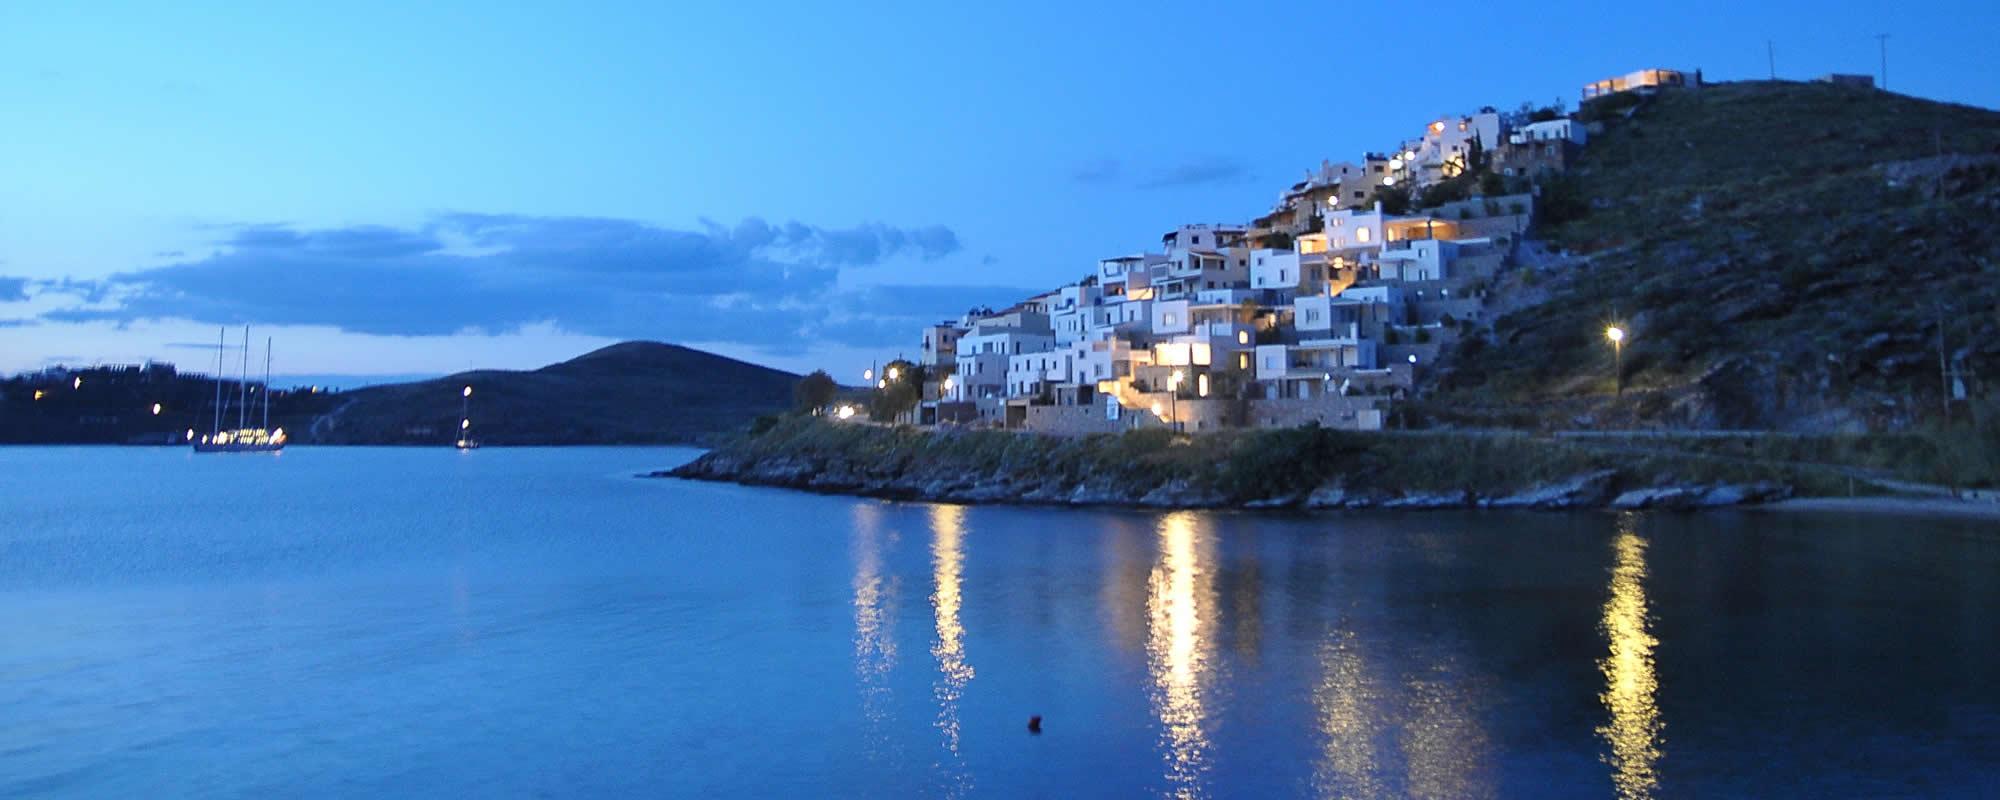 KEA, GREECE: SECRET SEASIDE By TELEGRAPH.co.uk